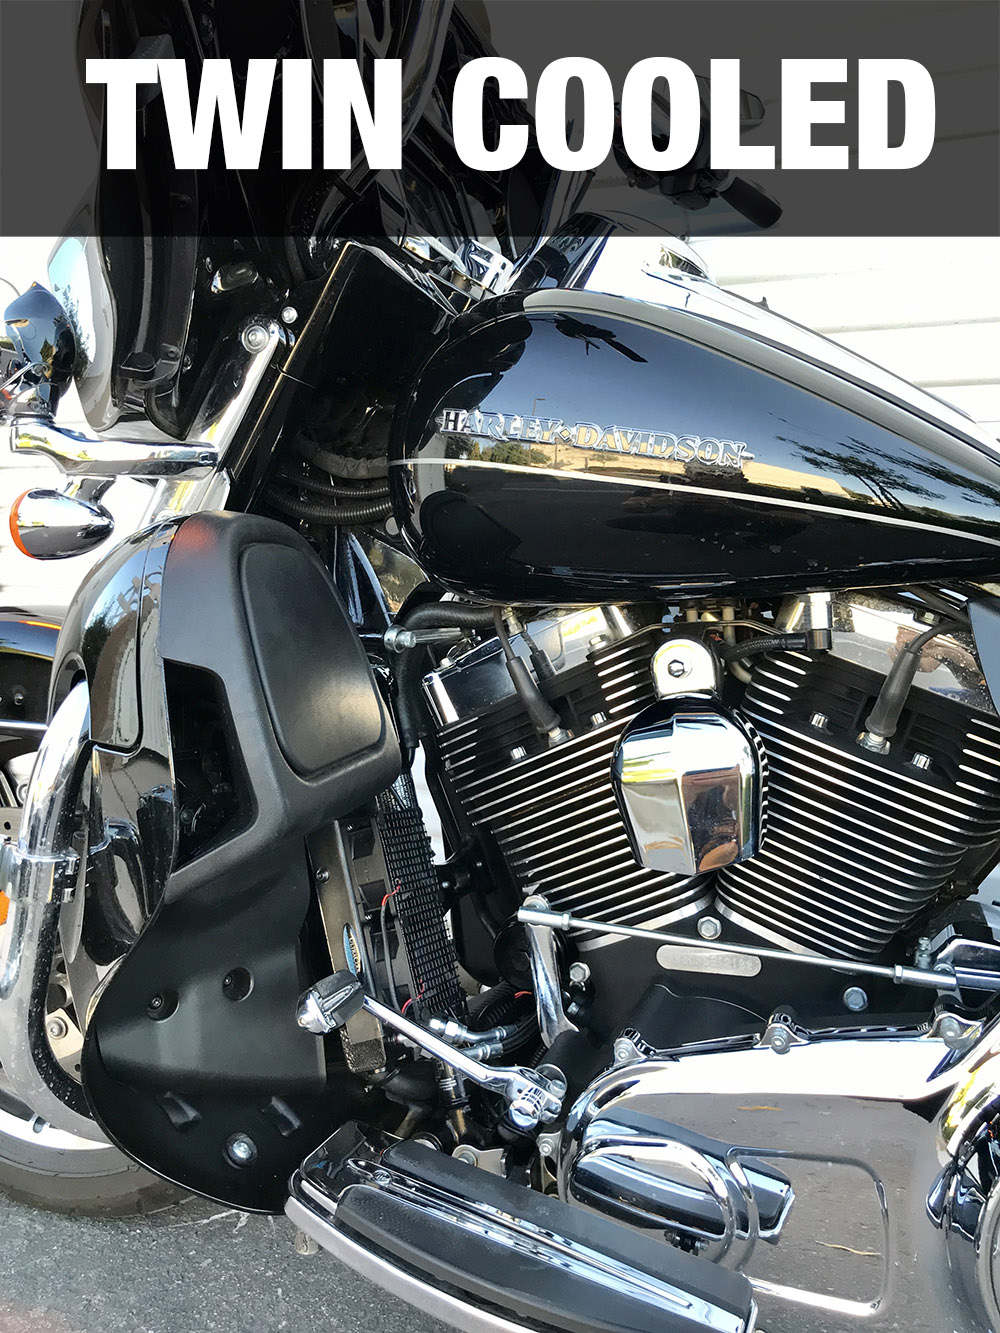 FLH Touring 2009-2016 including Twin-Cooled Lower Fairing Mount on